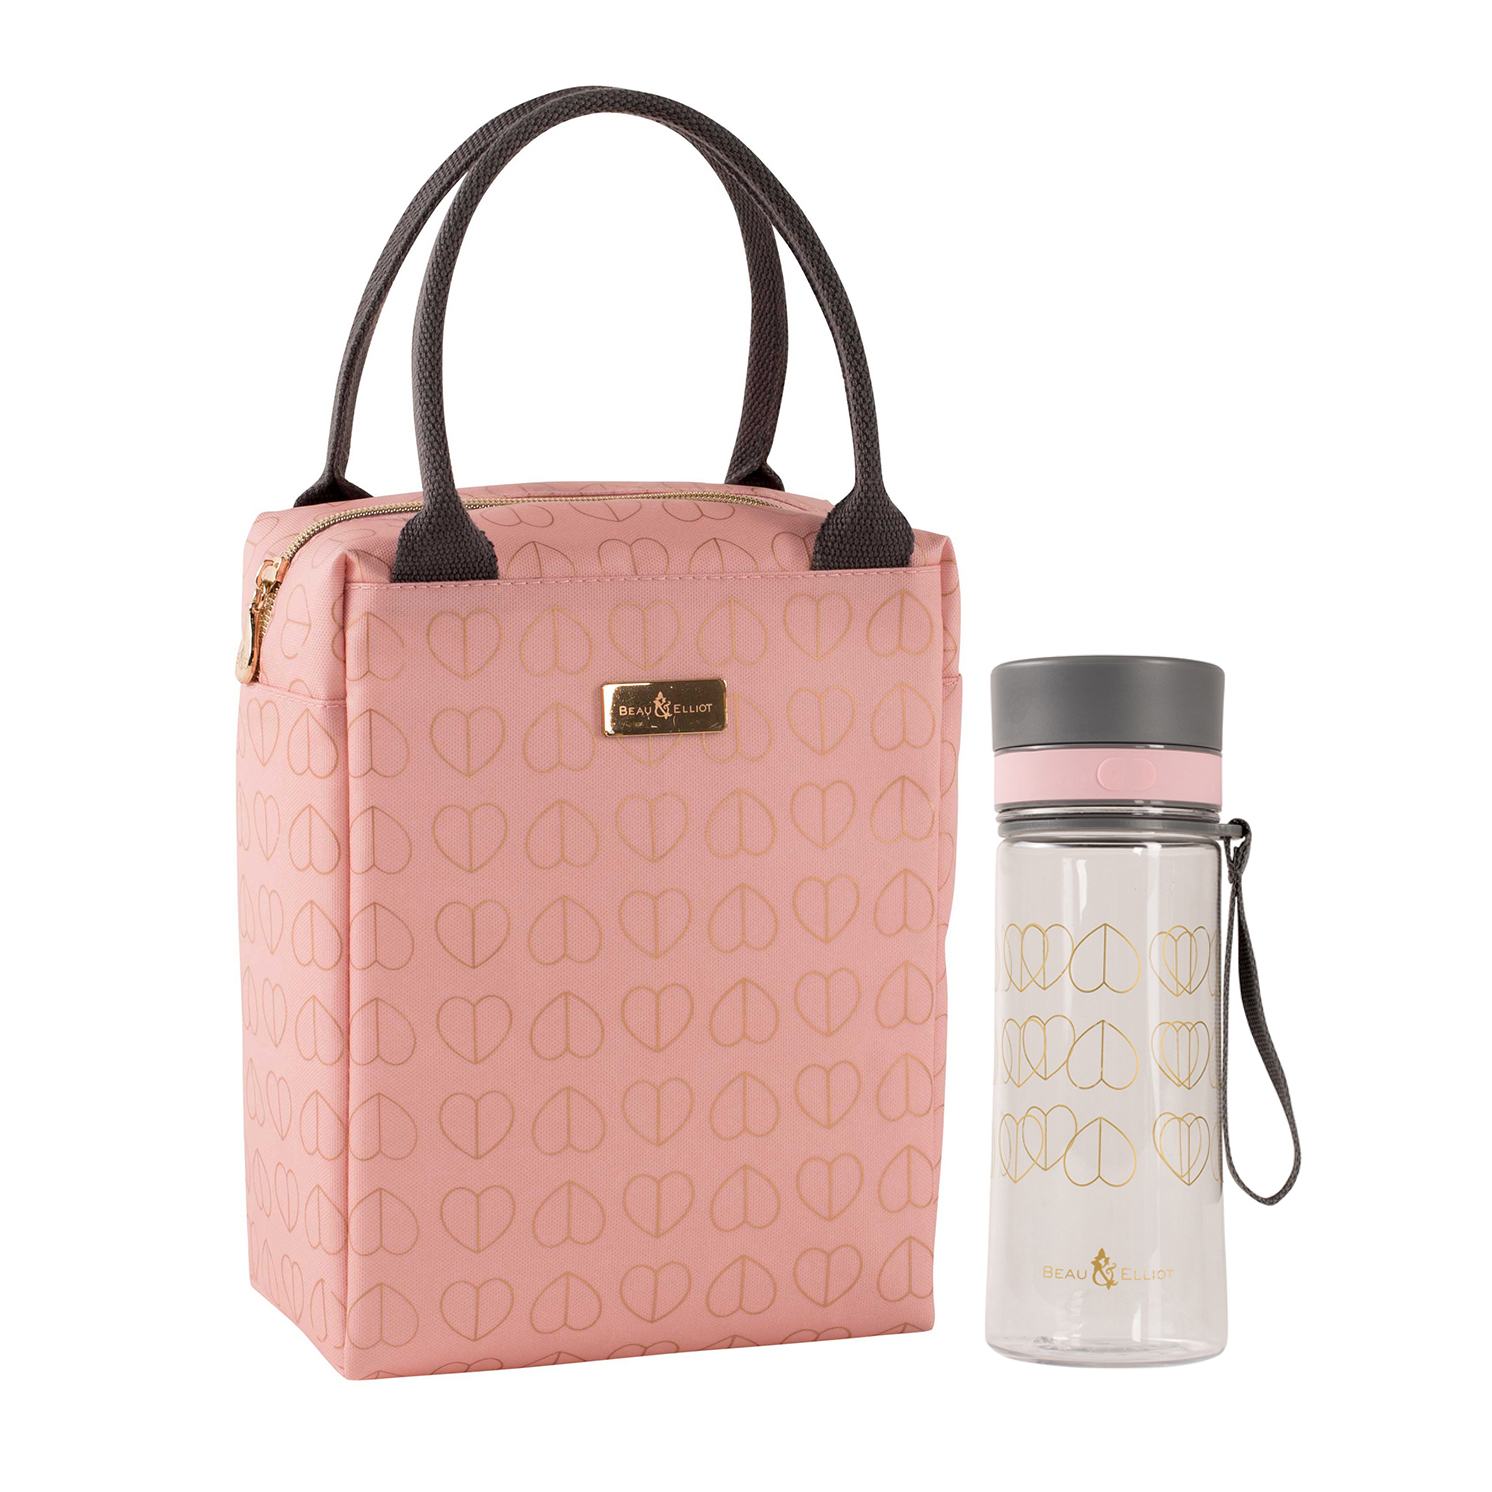 Beau & Elliot – Pink Blush Insulated Lunch Tote Bag & Matching Hydration Bottle